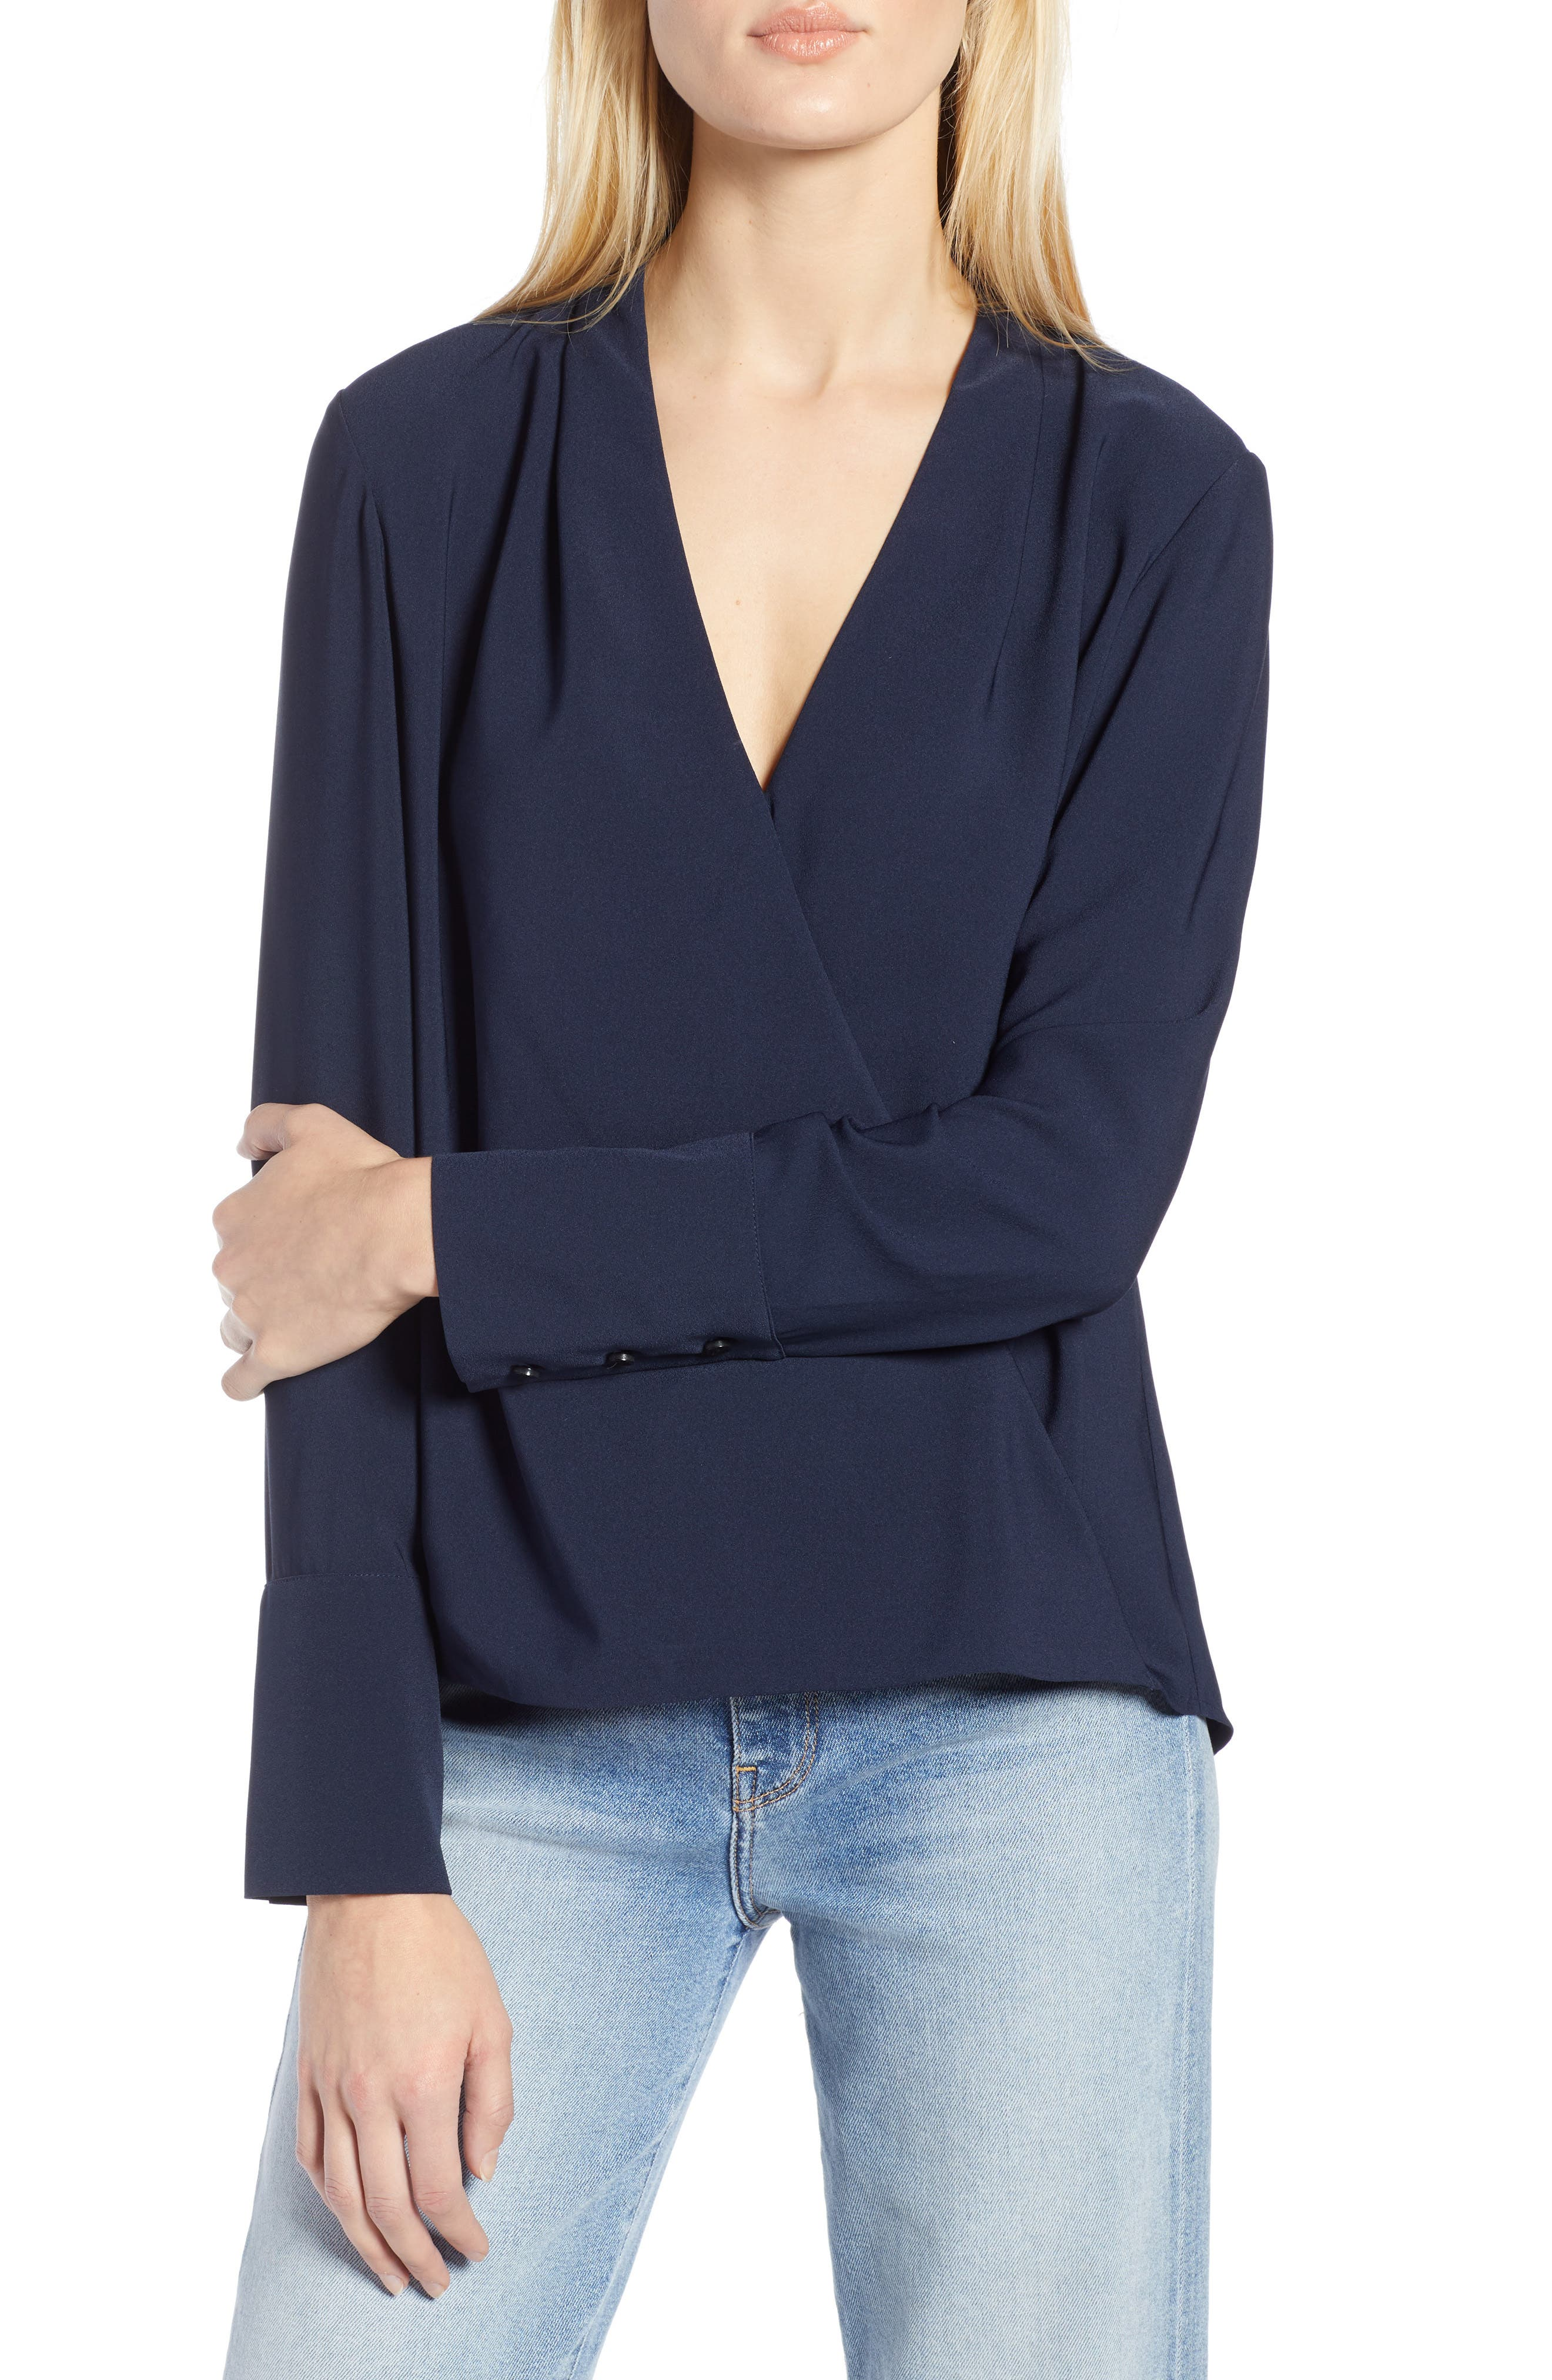 x Atlantic-Pacific Wrap Blouse,                             Main thumbnail 1, color,                             NAVY BLAZER